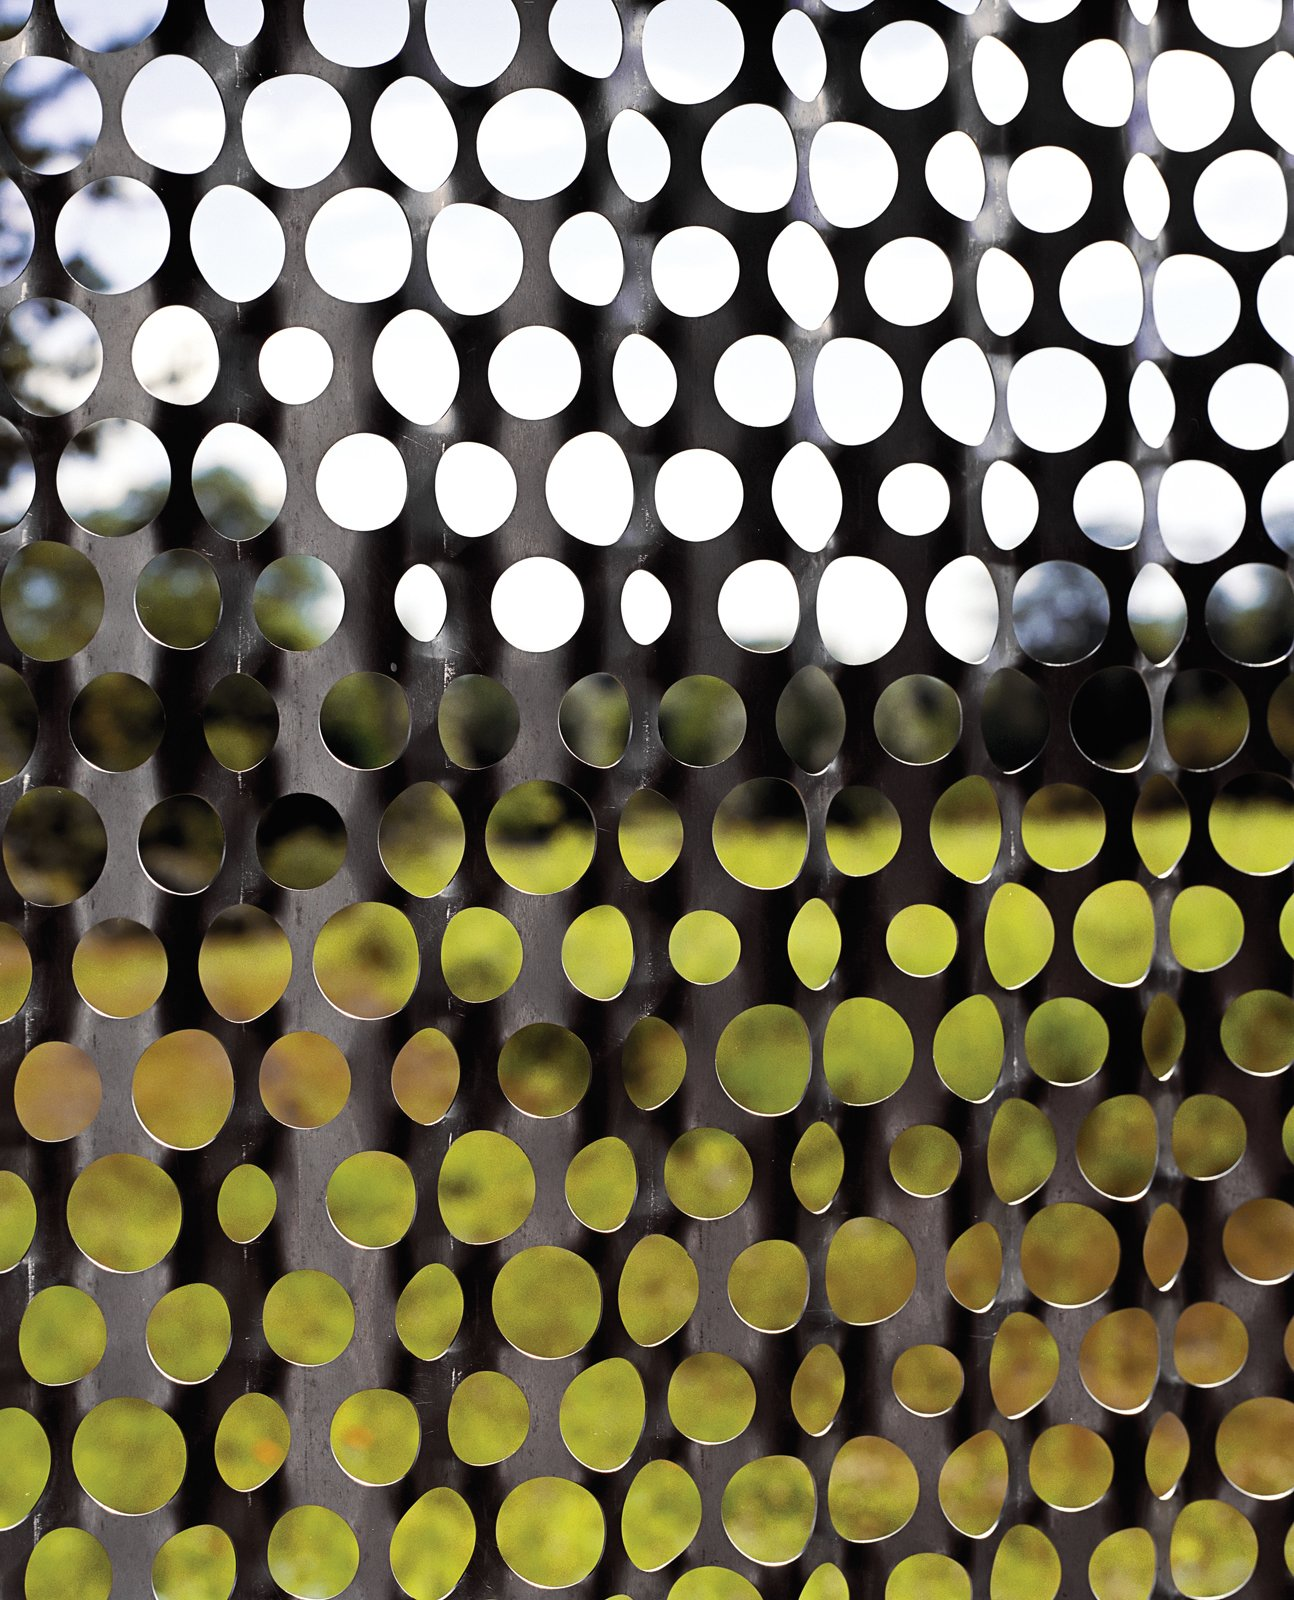 Outdoor and Metal Fences, Wall In the bathroom, perforated-metal screens create a pointillist perspective on the landscape.  Uses of Perforated Metal by William Lamb